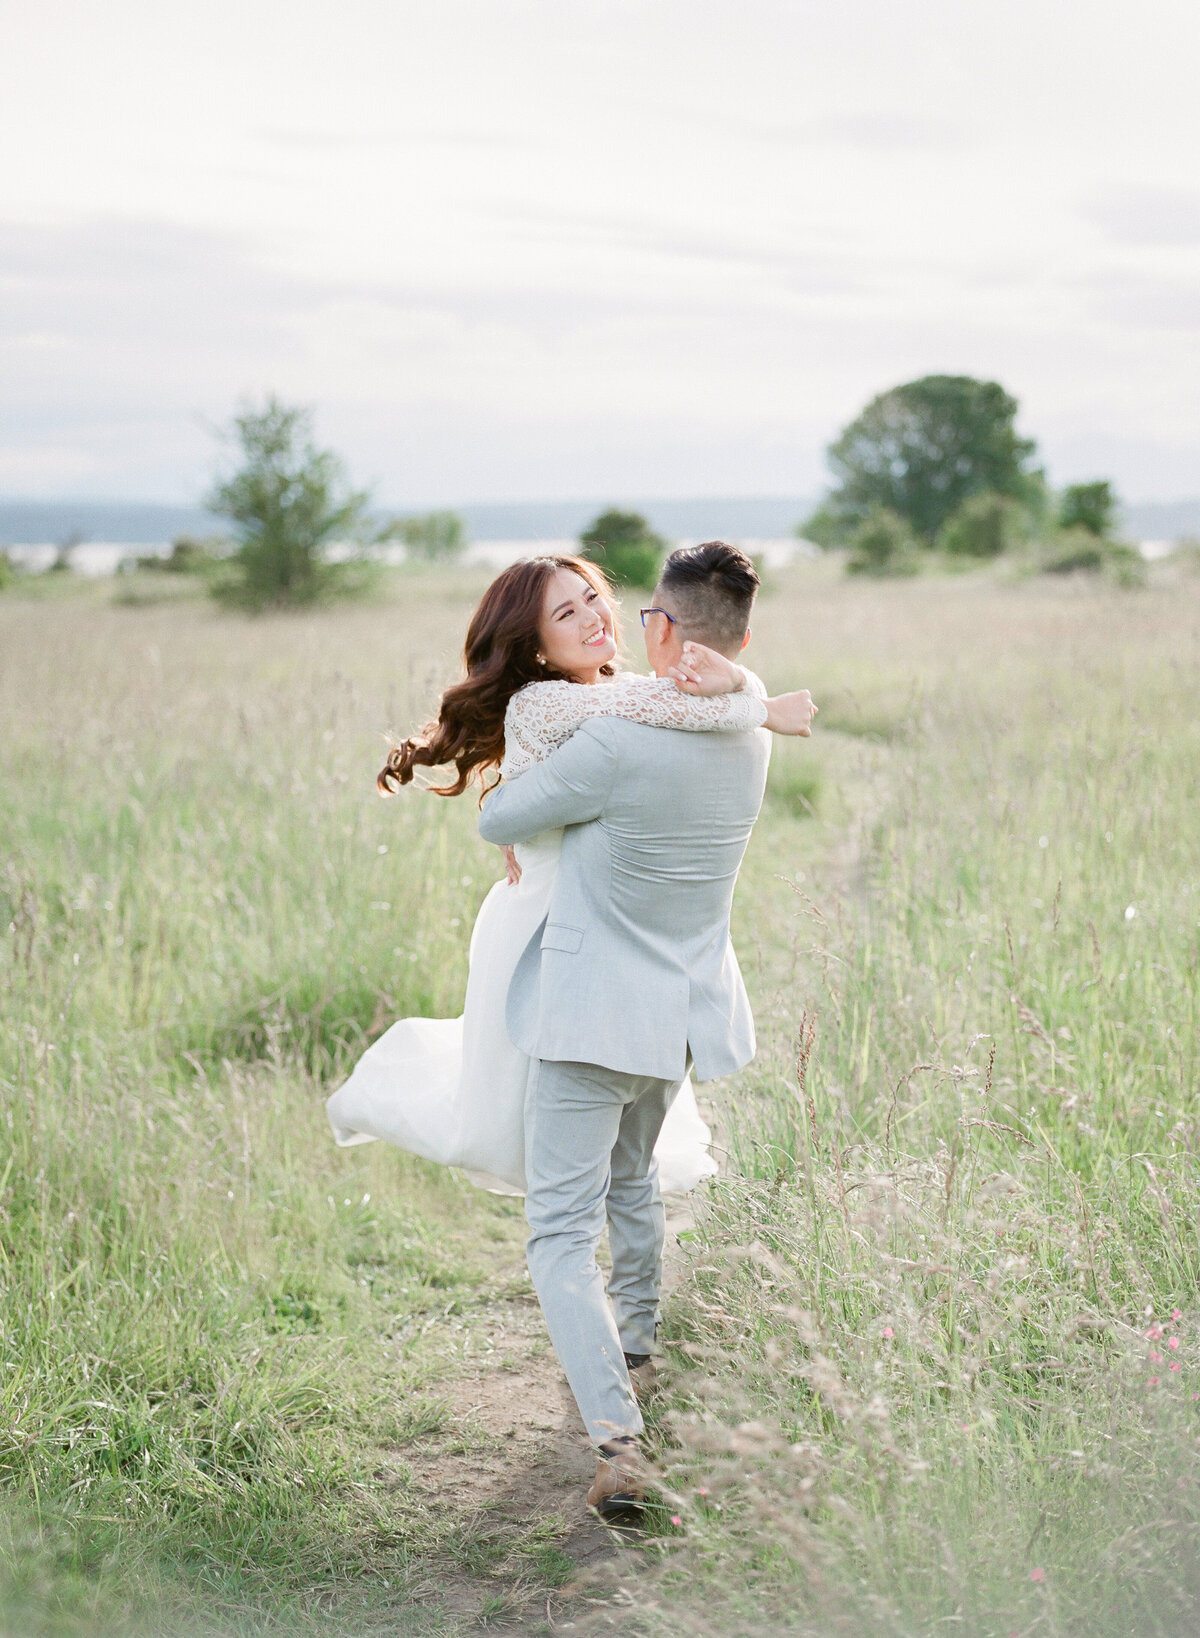 Nikki & Matt - Discovery Park Engagement - Tetiana Photgoraphy-34